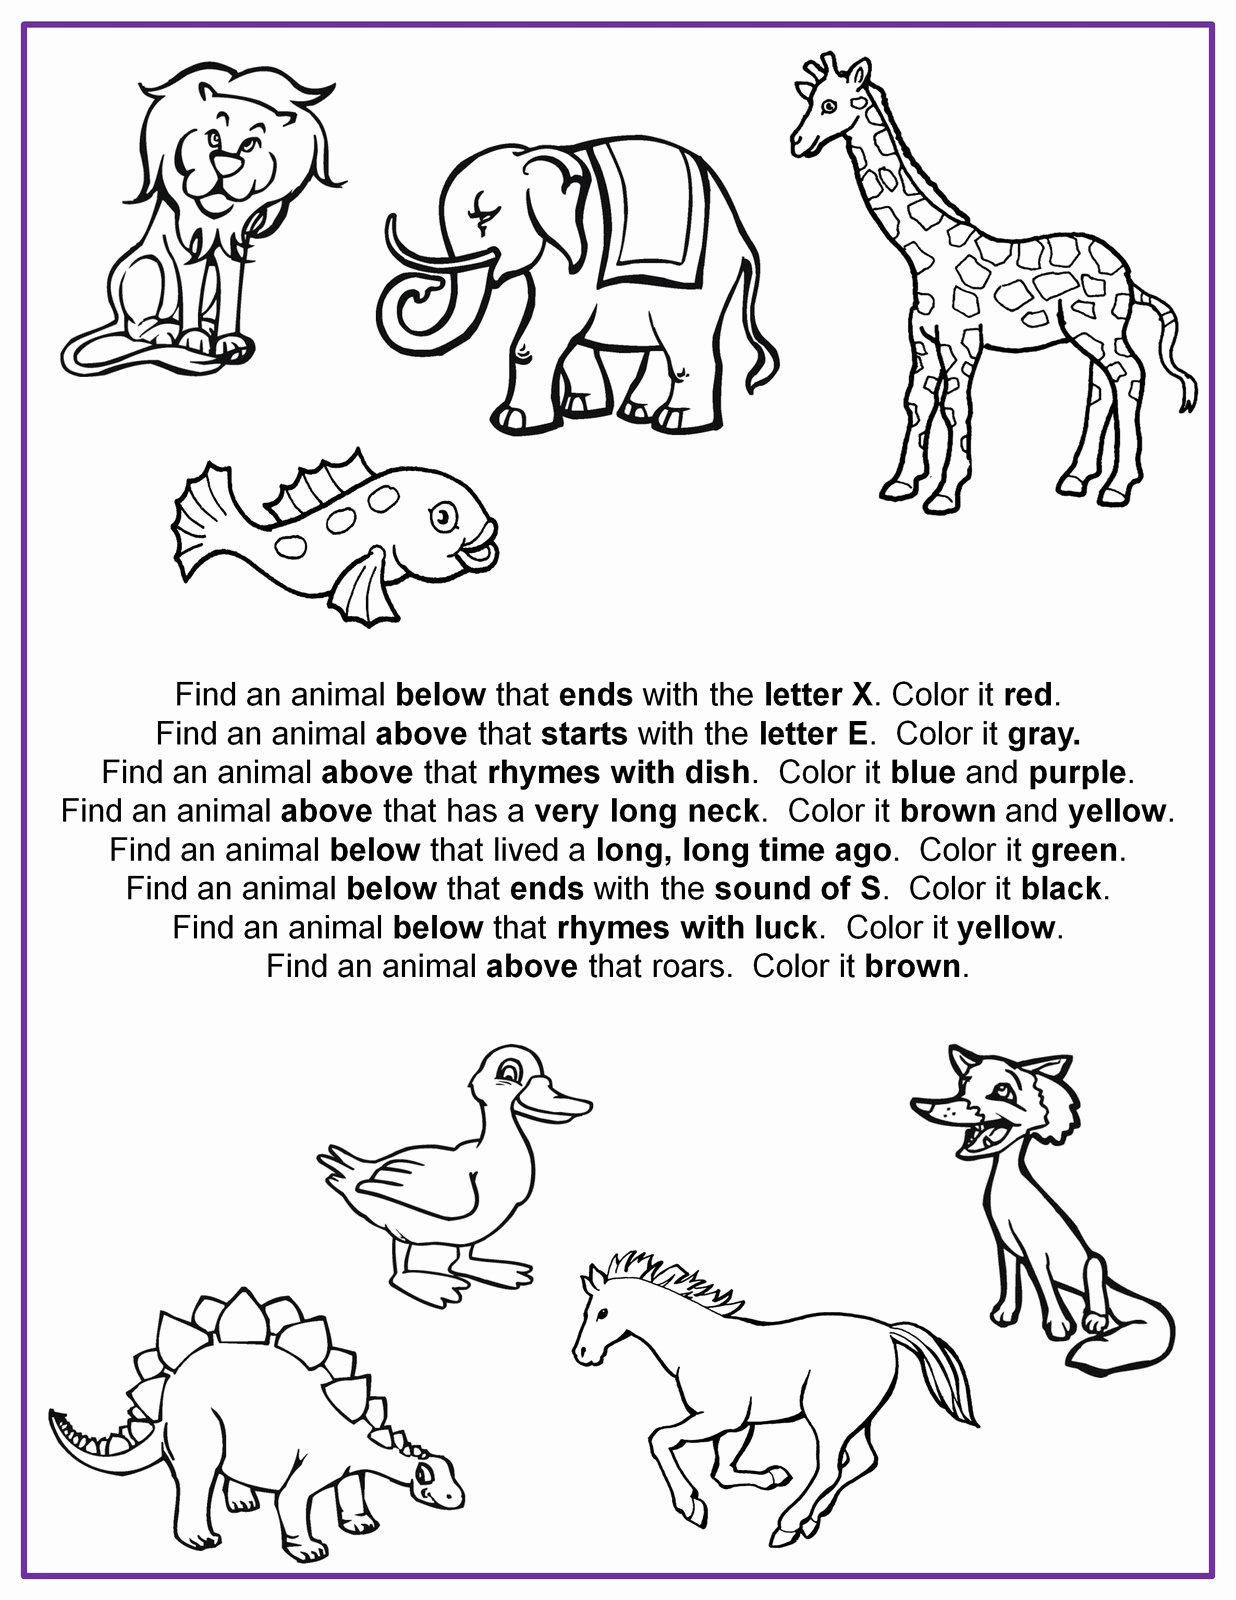 Following Directions Worksheet Kindergarten Fresh Following Directions Worksheet Kindergarten